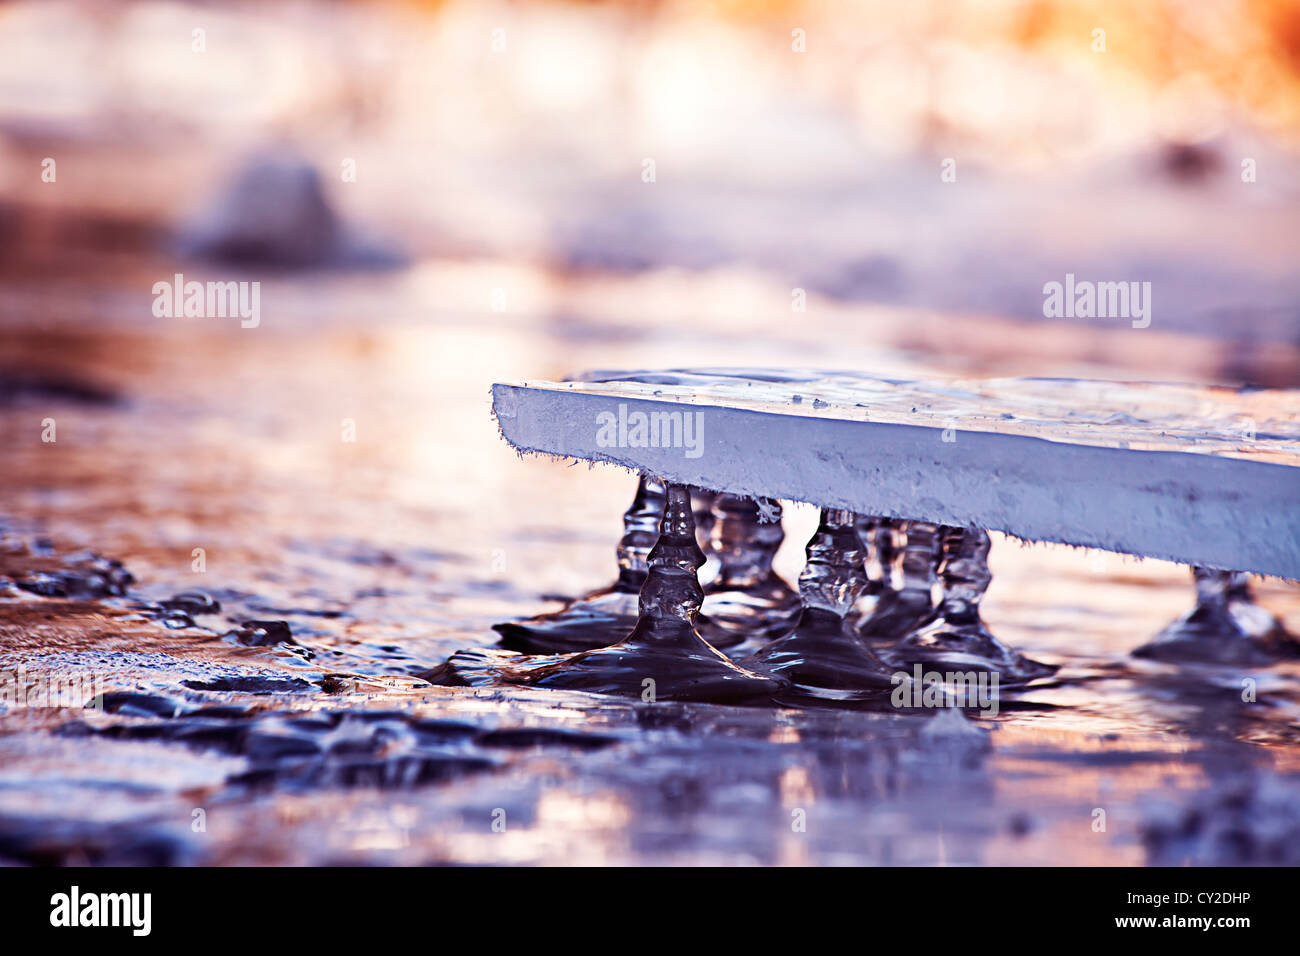 difference in levels on the river seen with ice layer - Stock Image